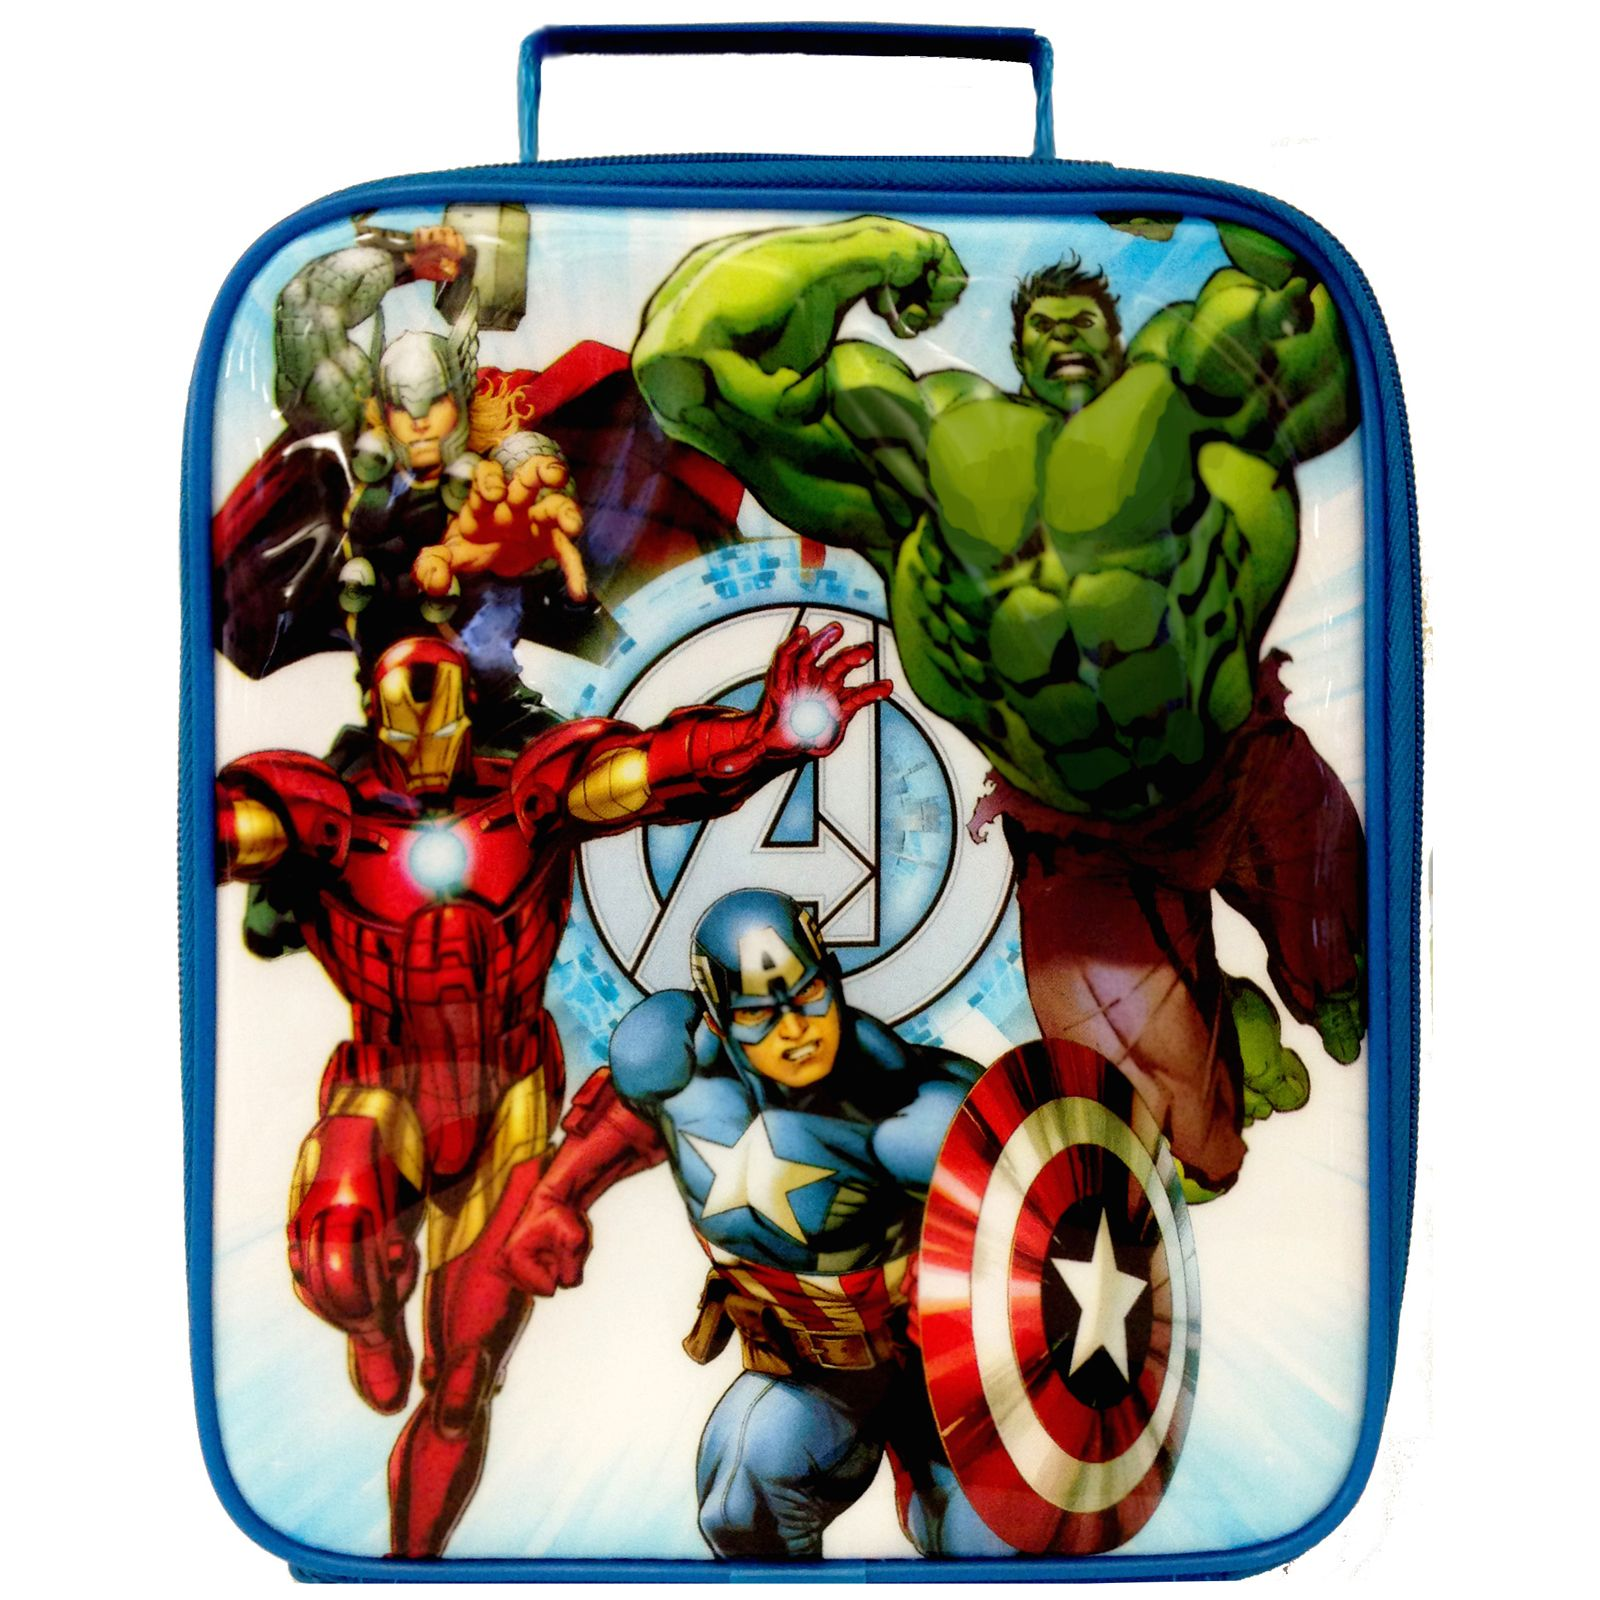 Dulux Marvel Avengers Bedroom In A Box Officially Awesome: MARVEL AVENGERS INSULATED LUNCH BAG IRON MAN THOR HULK